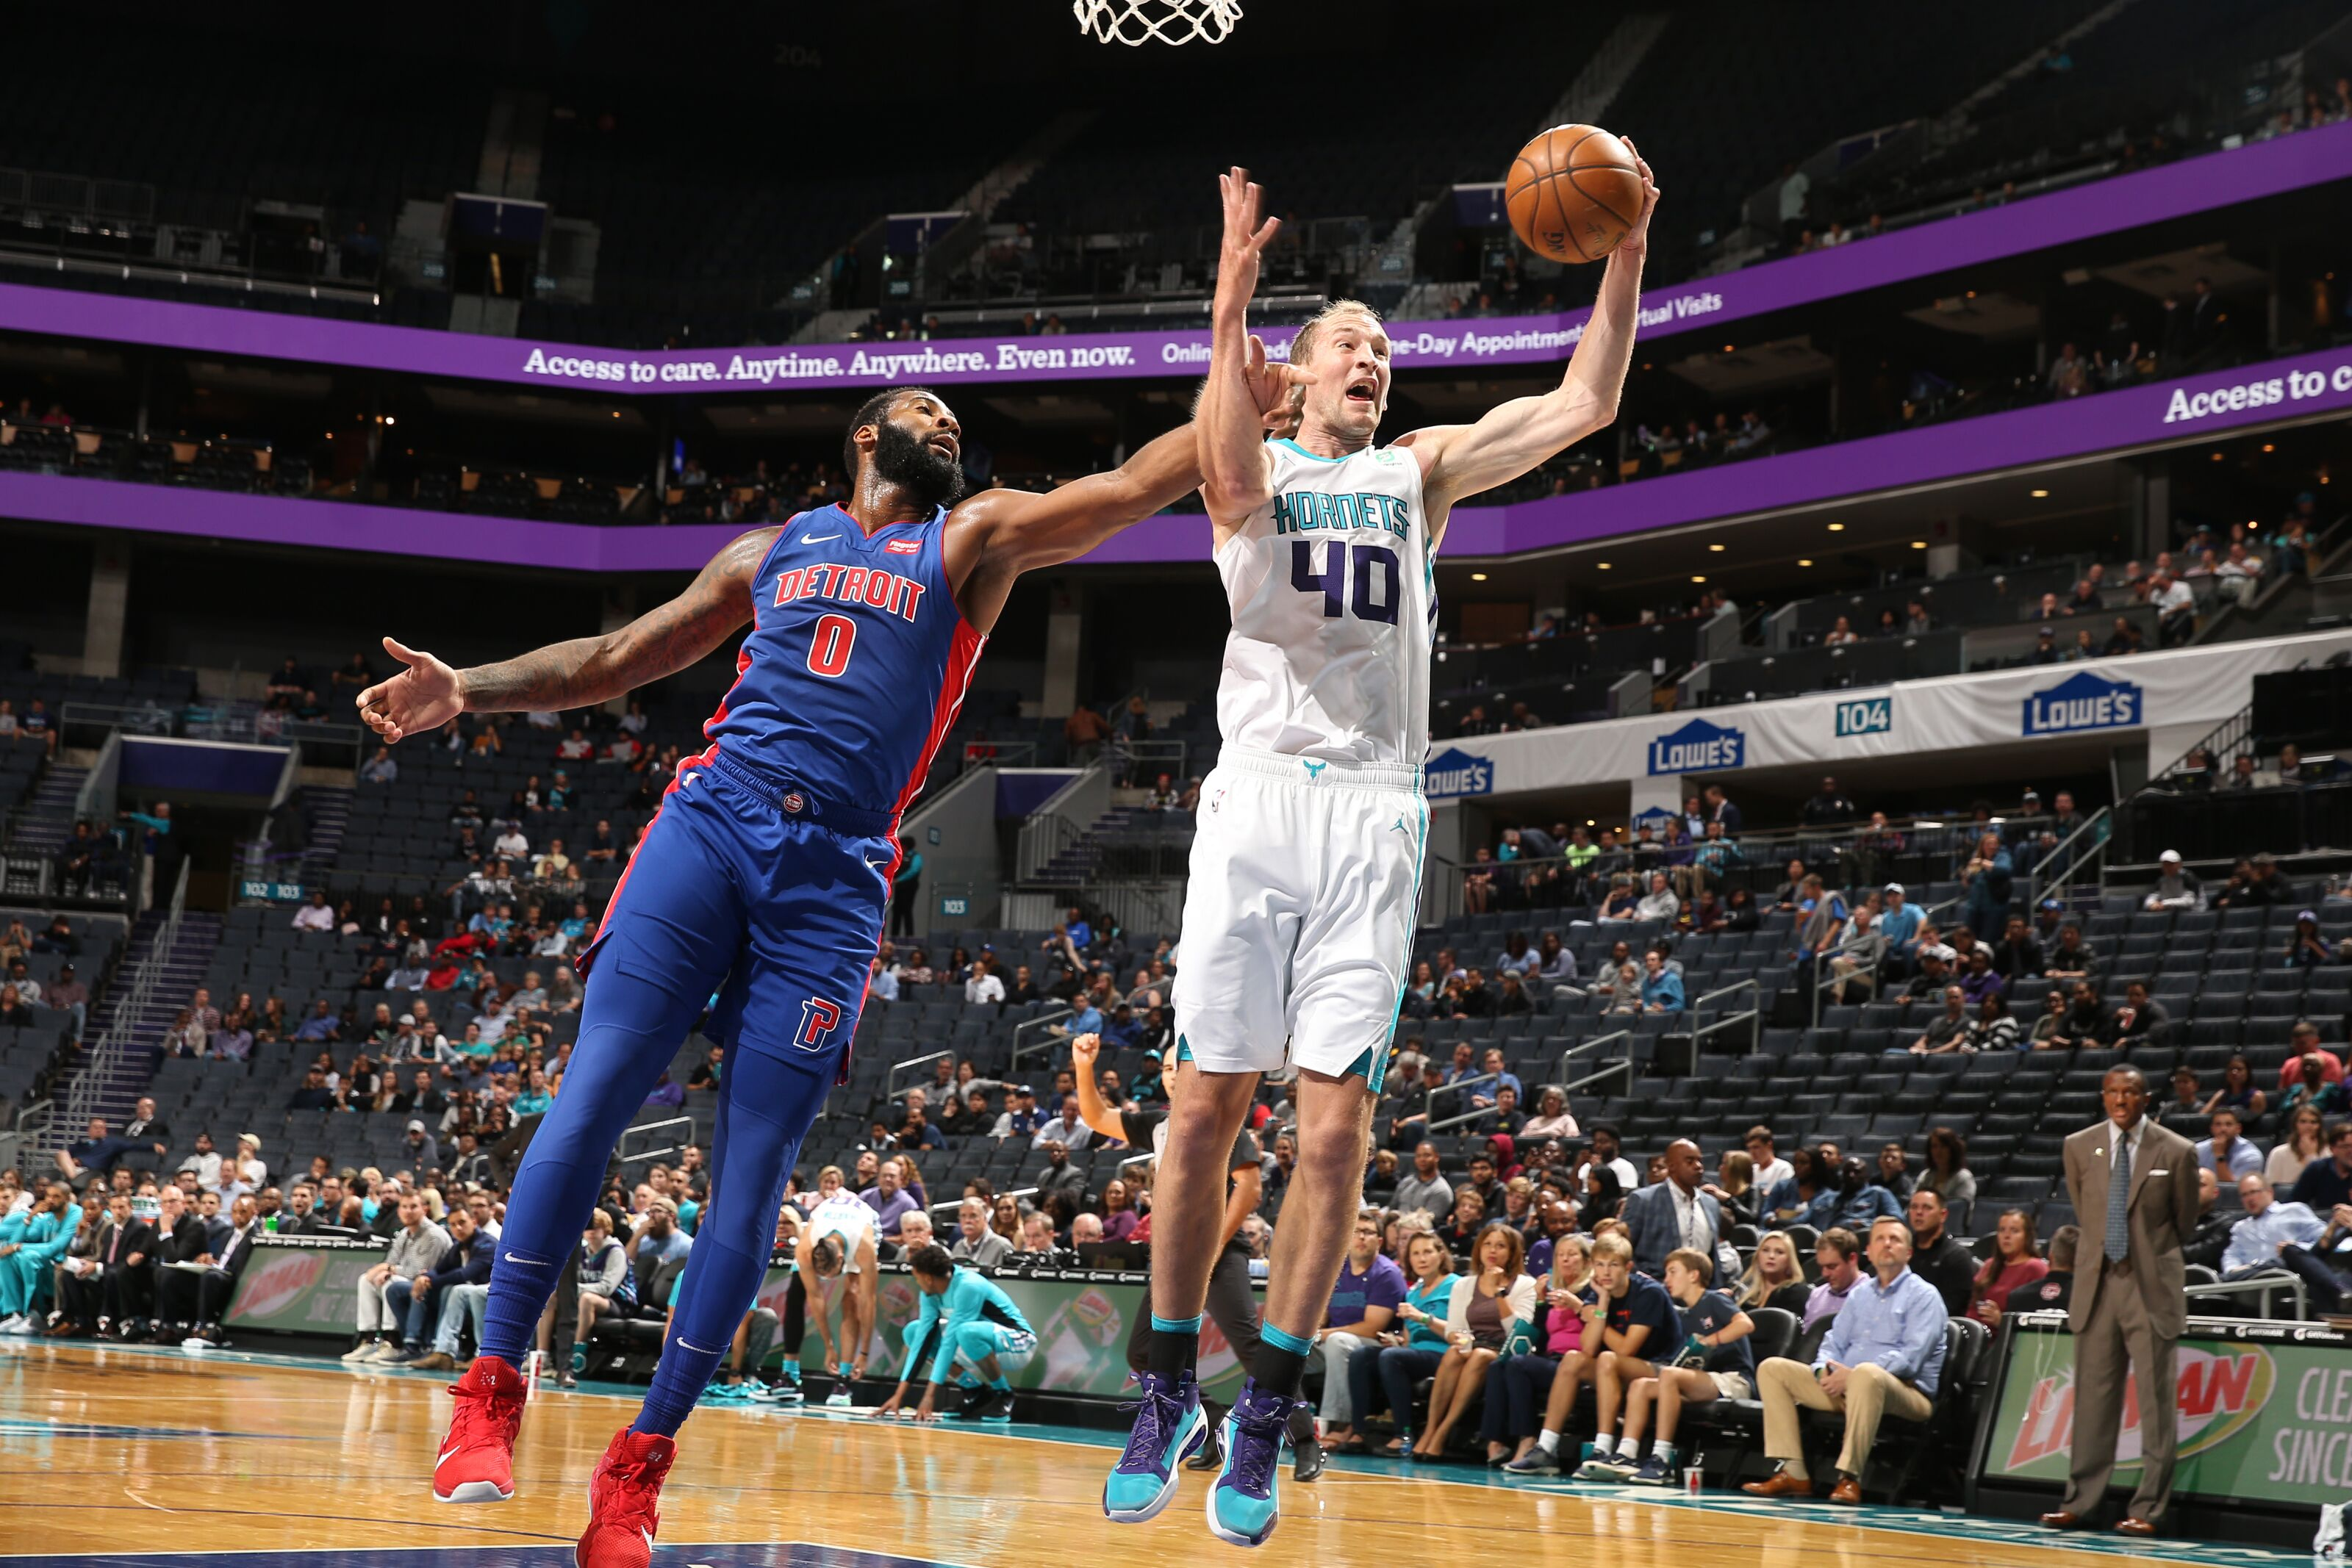 Charlotte Hornets: Cody Zeller is expanding his game